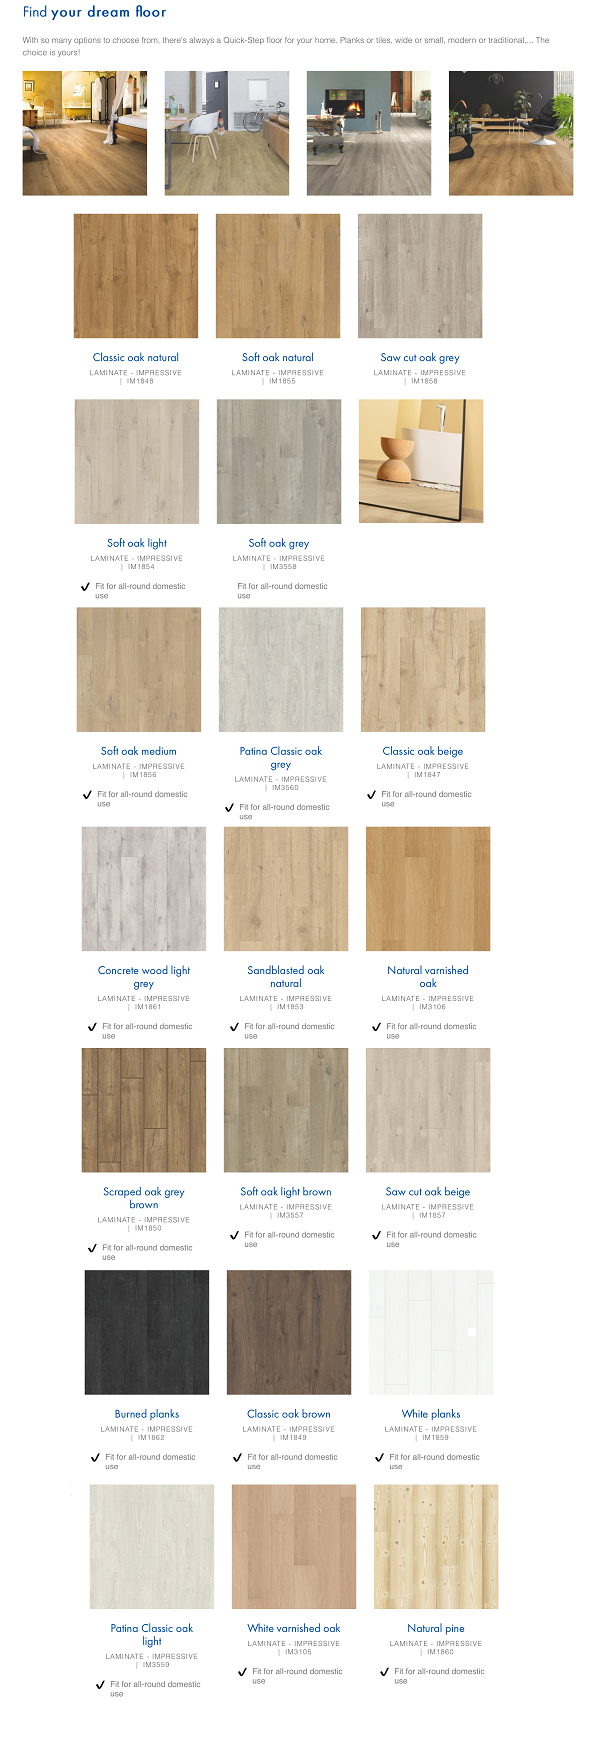 Quickstep Laminate flooring